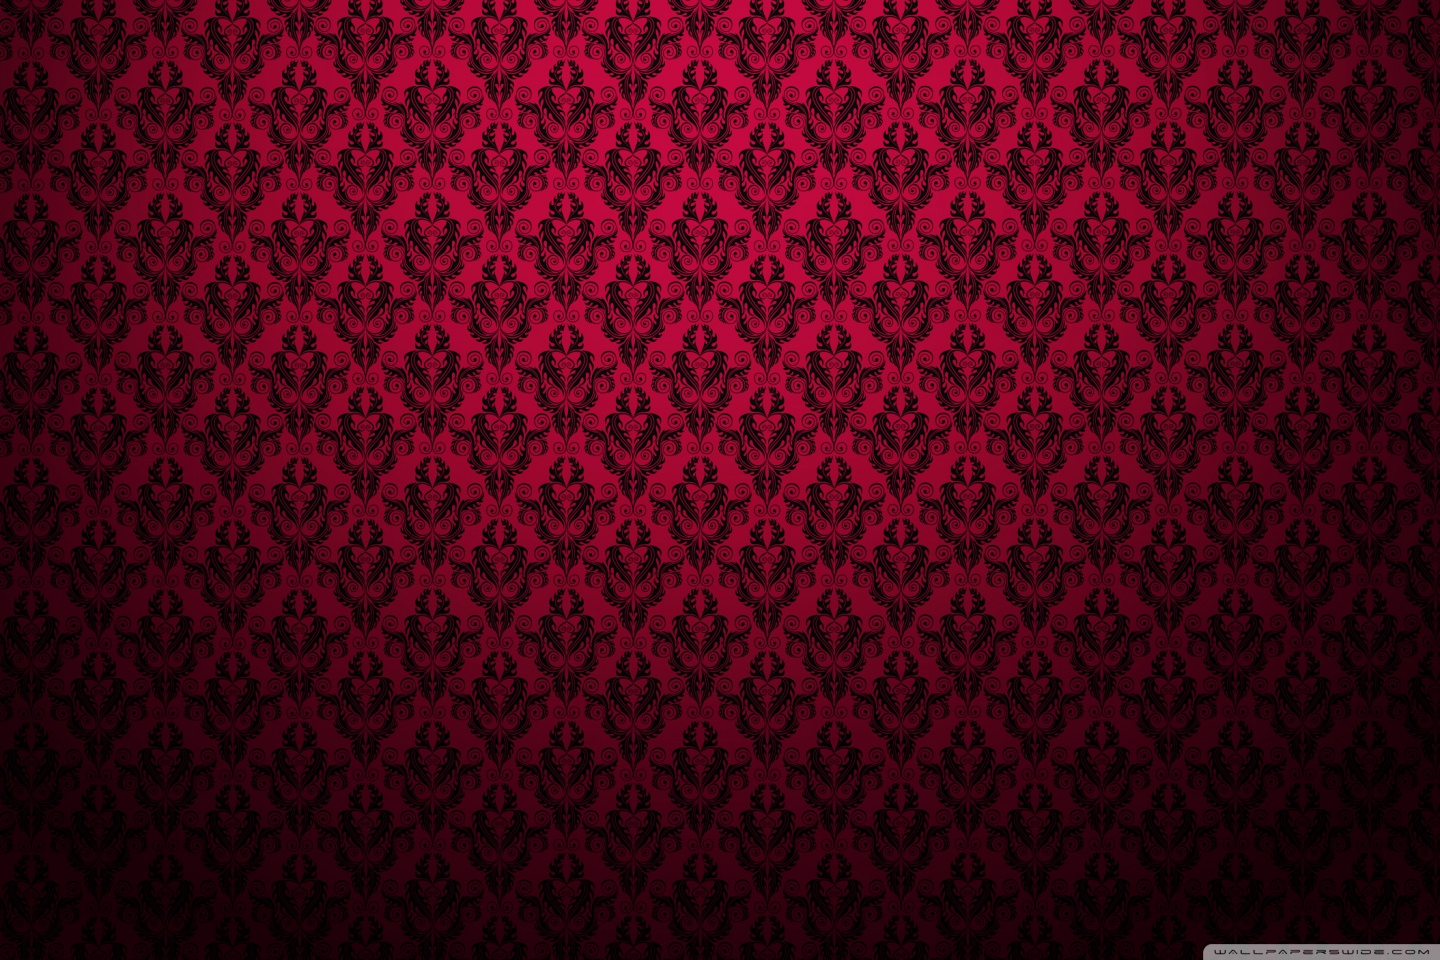 Pattern wallpaper 1440x960 40245 for Wallpaper pattern